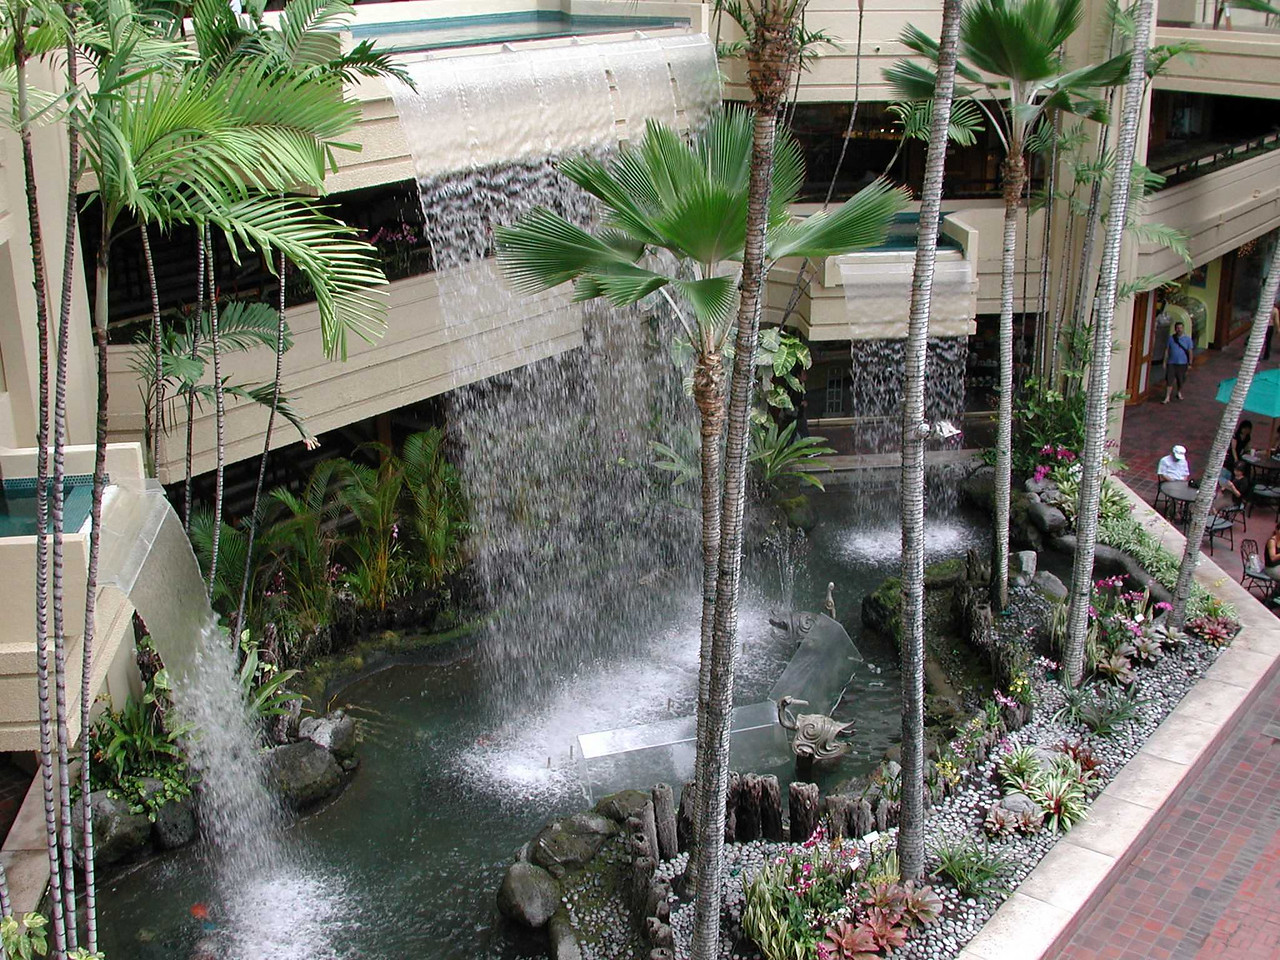 The hotel lobby was open to the sky and had an indoor waterfall.